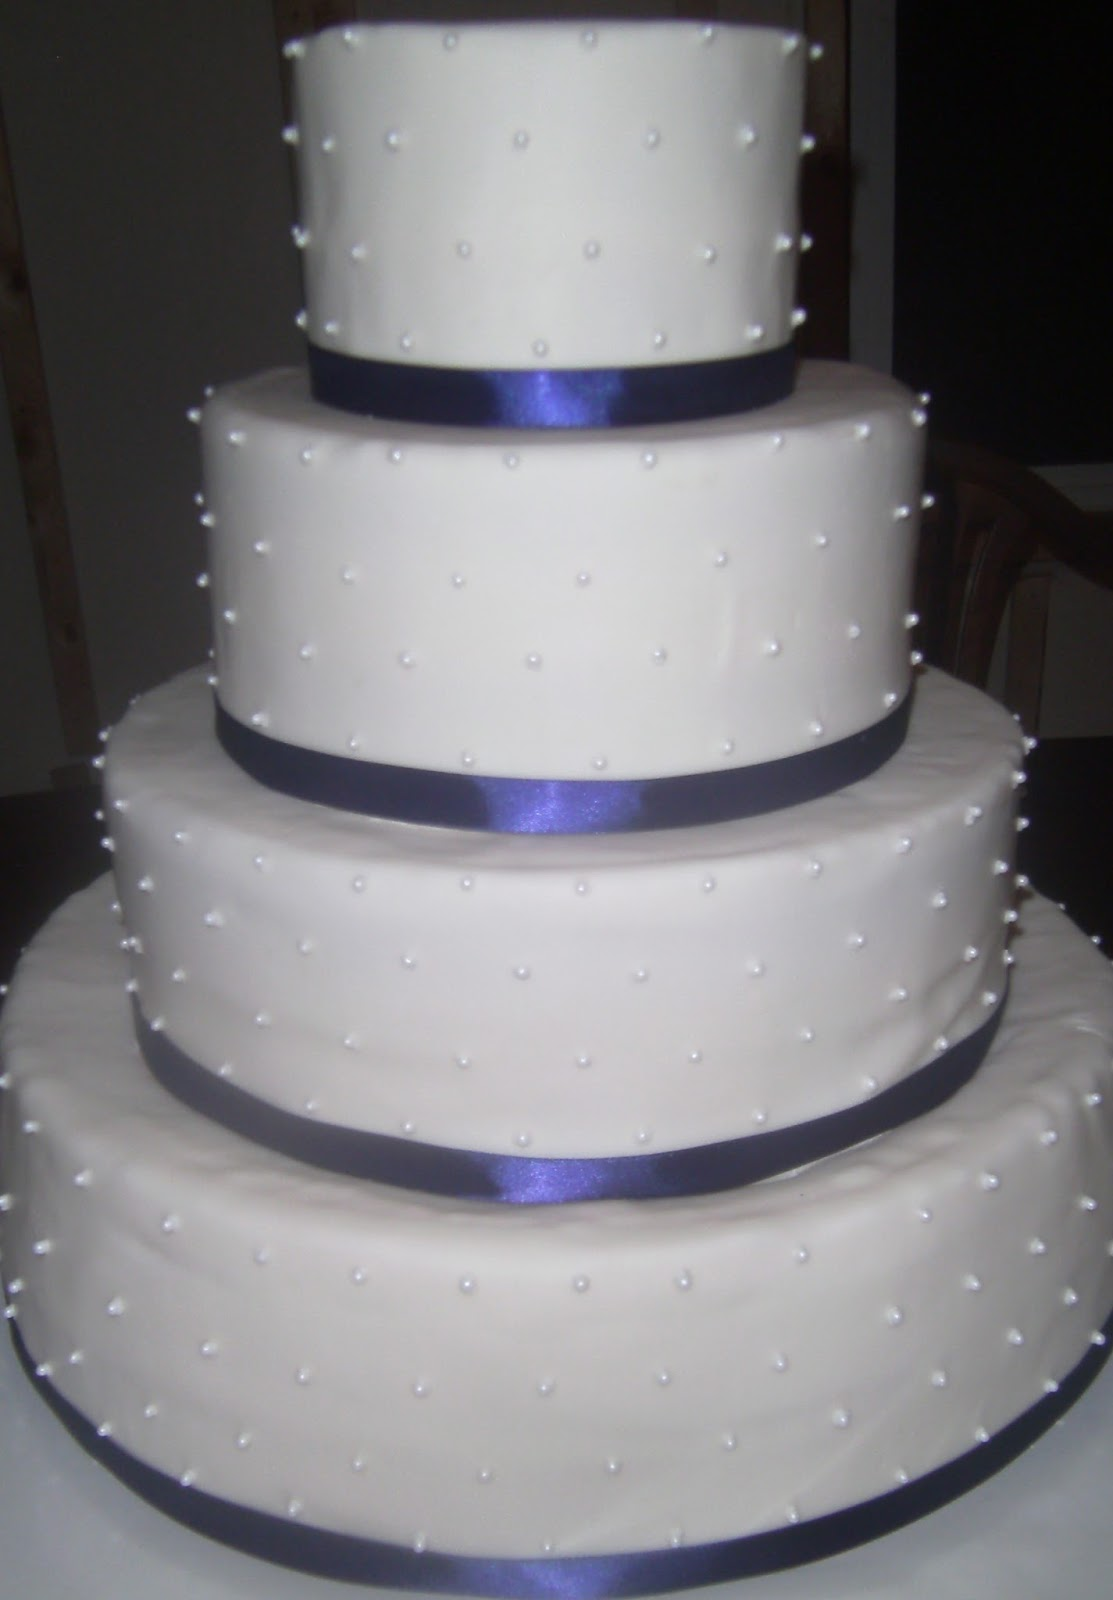 Fuzzy Cakes: Wedding cakes